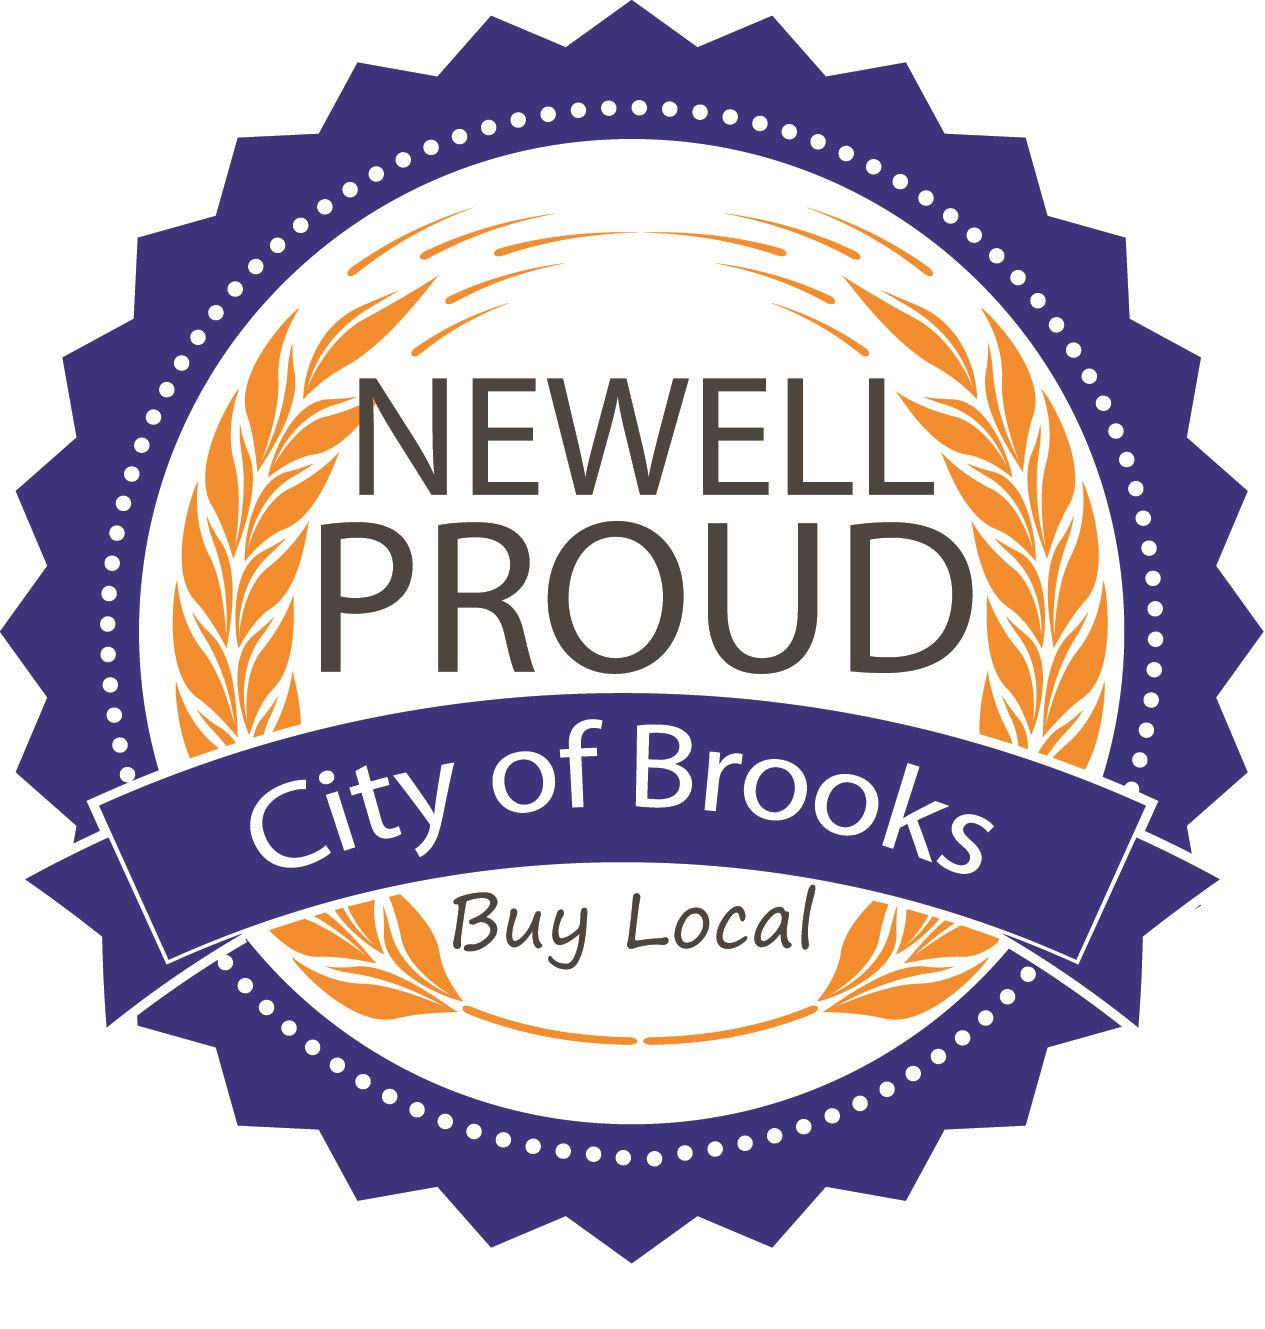 Newell Proud - City of Brooks